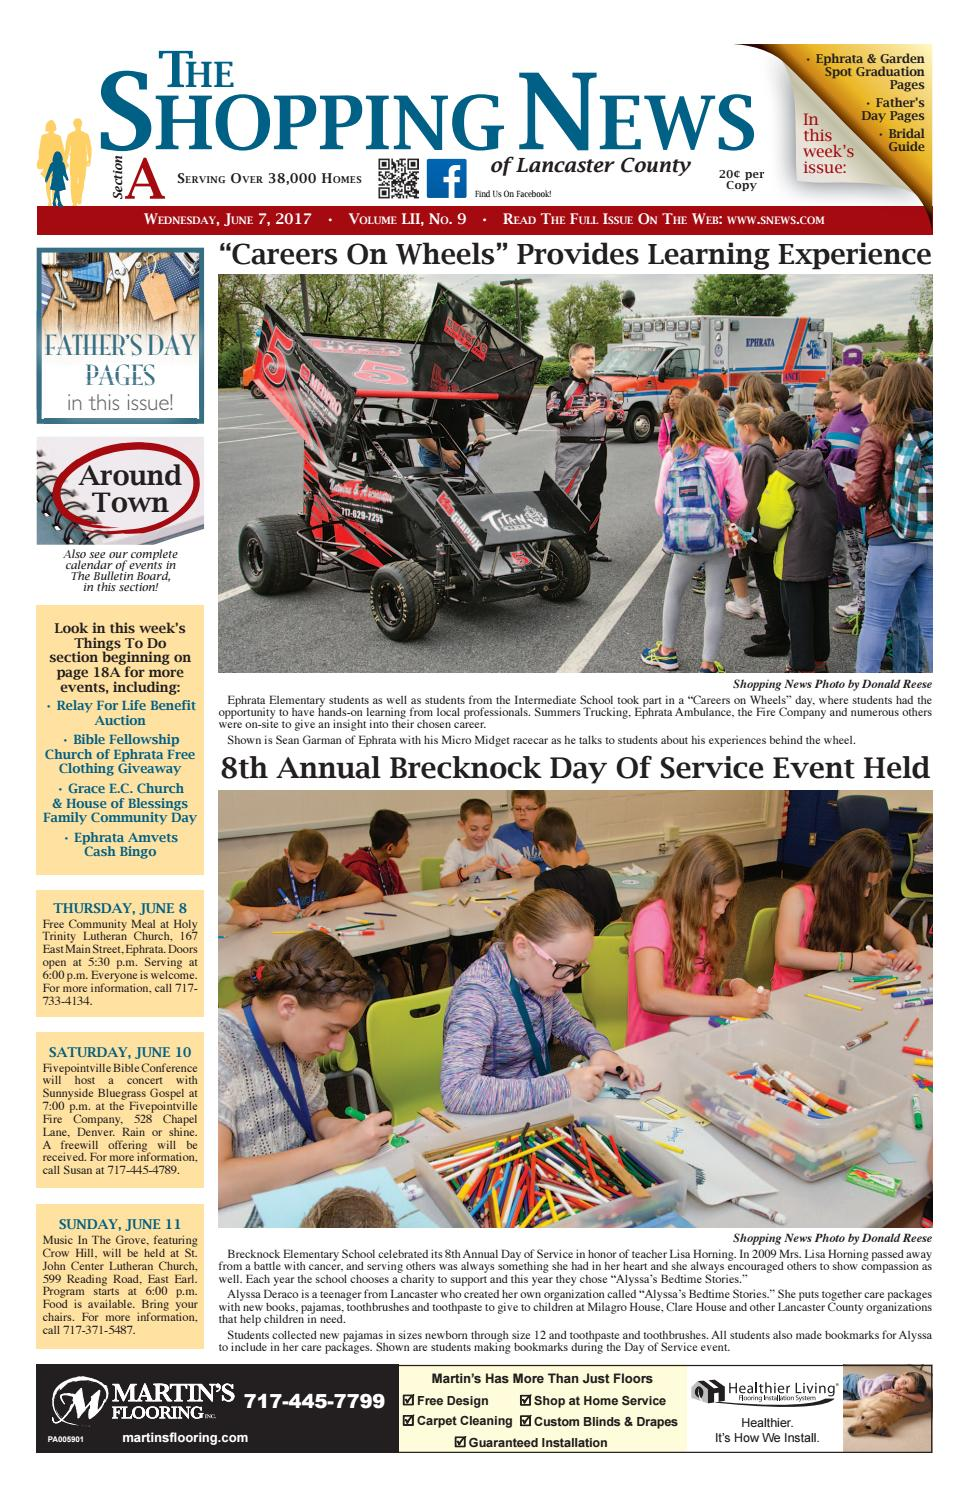 General Info Founded more than 40 years ago, The Shopping News of Lancaster County provides local news pertaining to the communities of Lancaster County, Penn., including announcements of wedding and engagements, public auctions, local weather and community events.